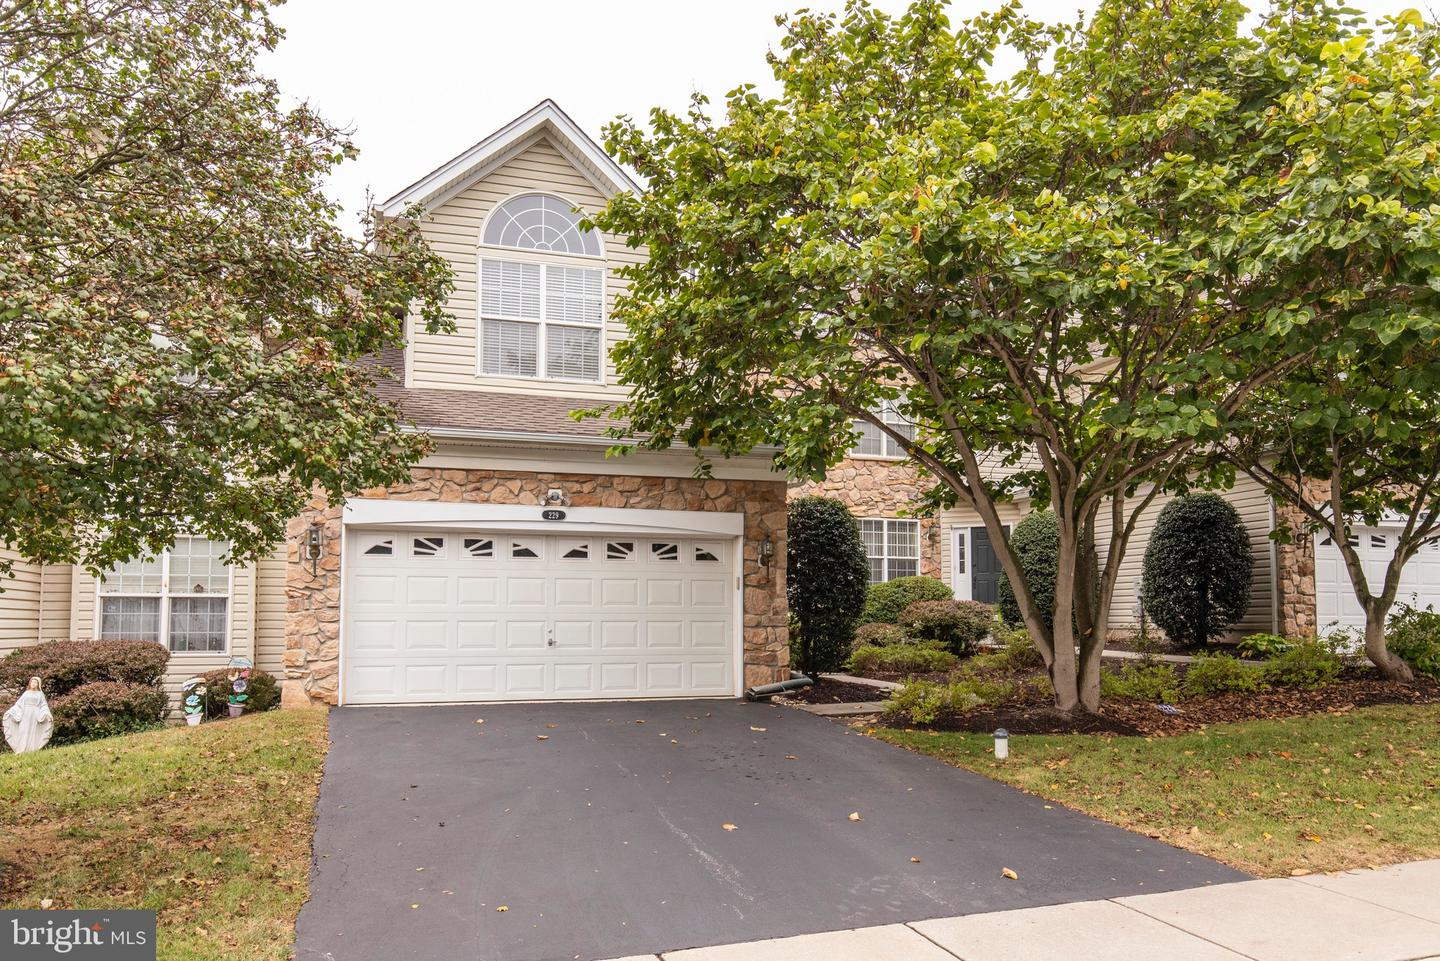 229 Silverbell Court West Chester, PA 19380